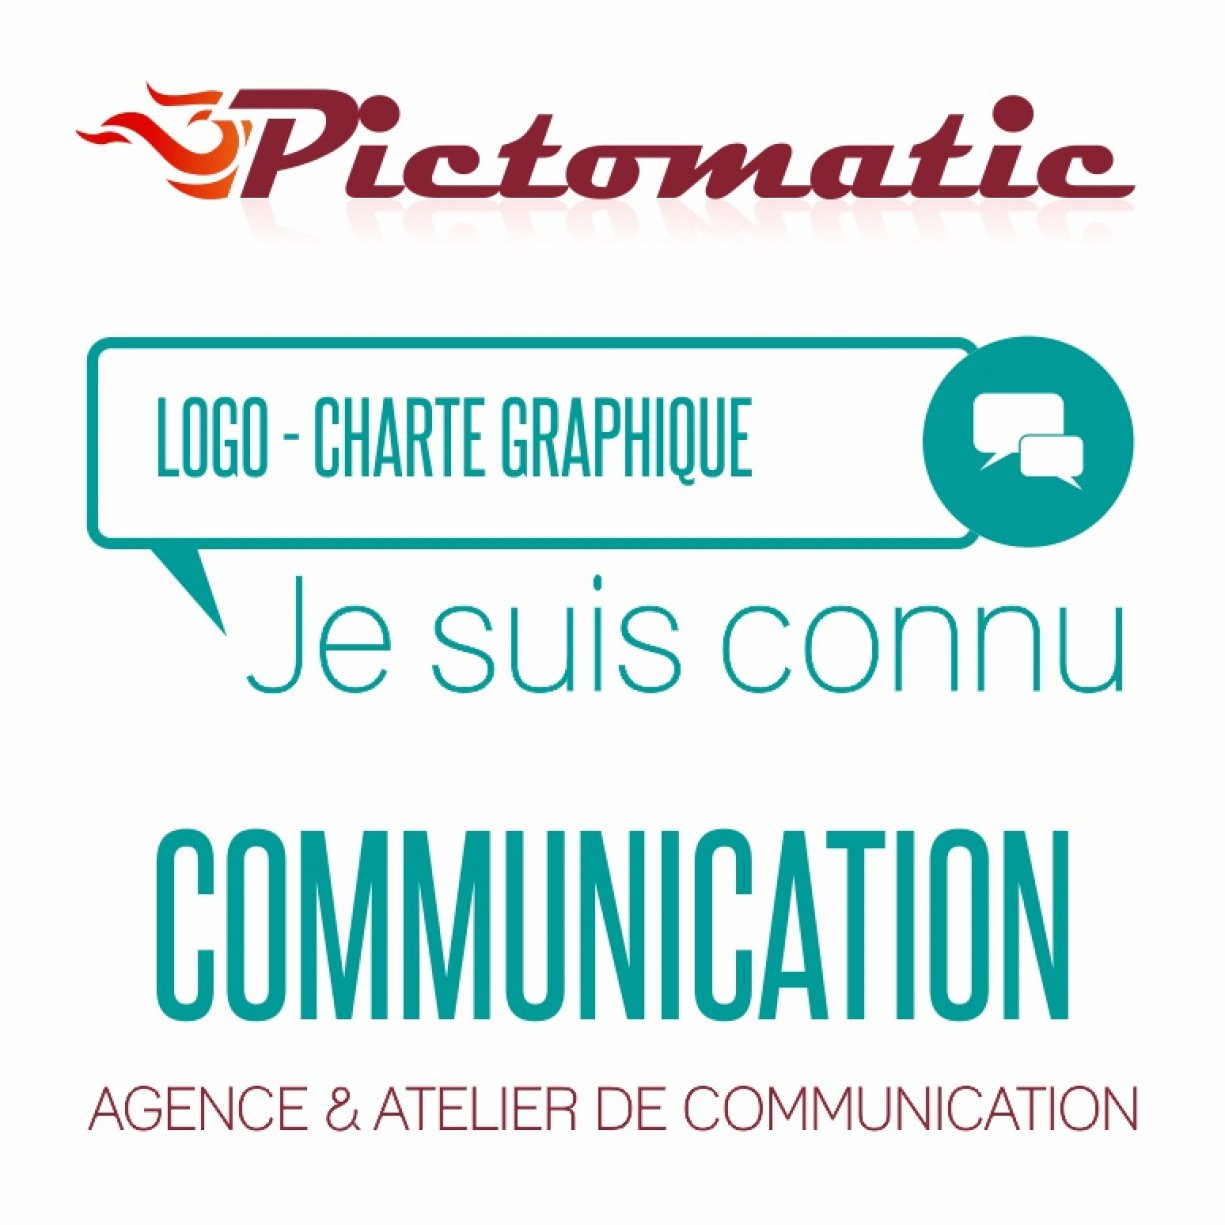 Pictomatic Communication